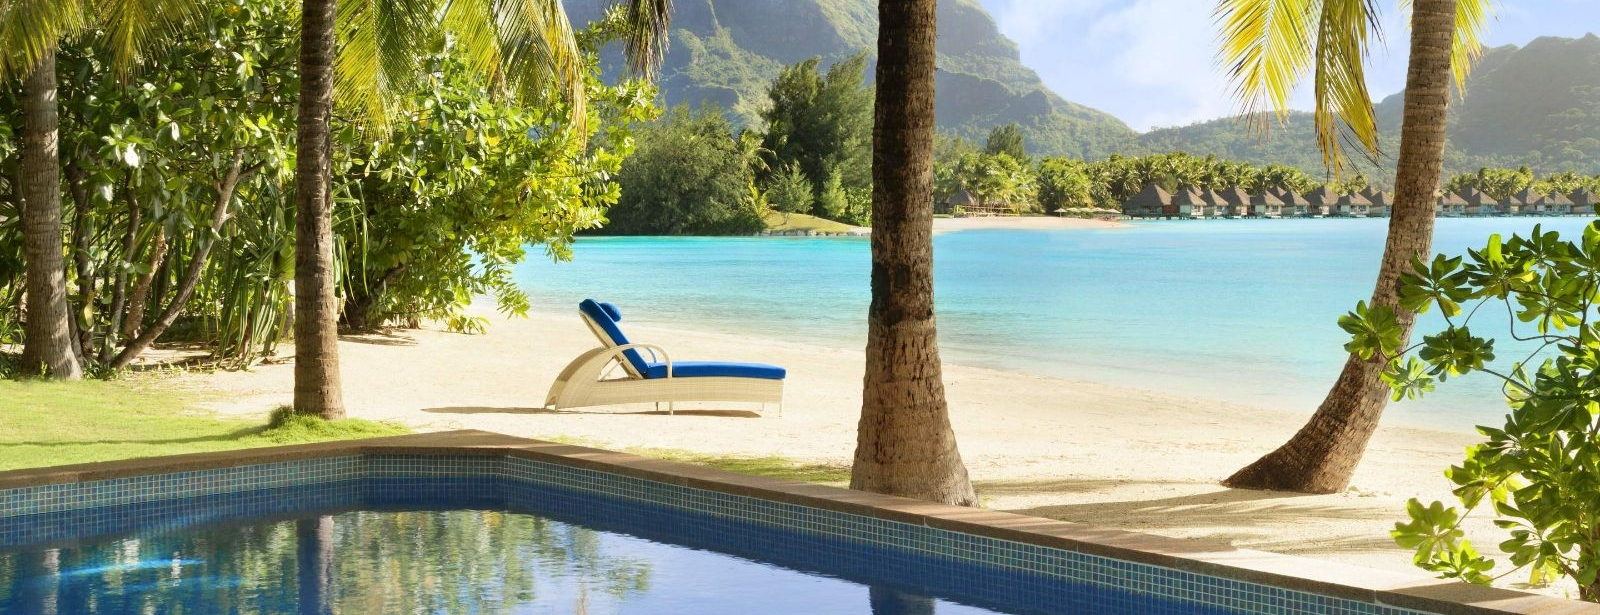 The St. Regis Bora Bora Resort - Beachside Pool Villa